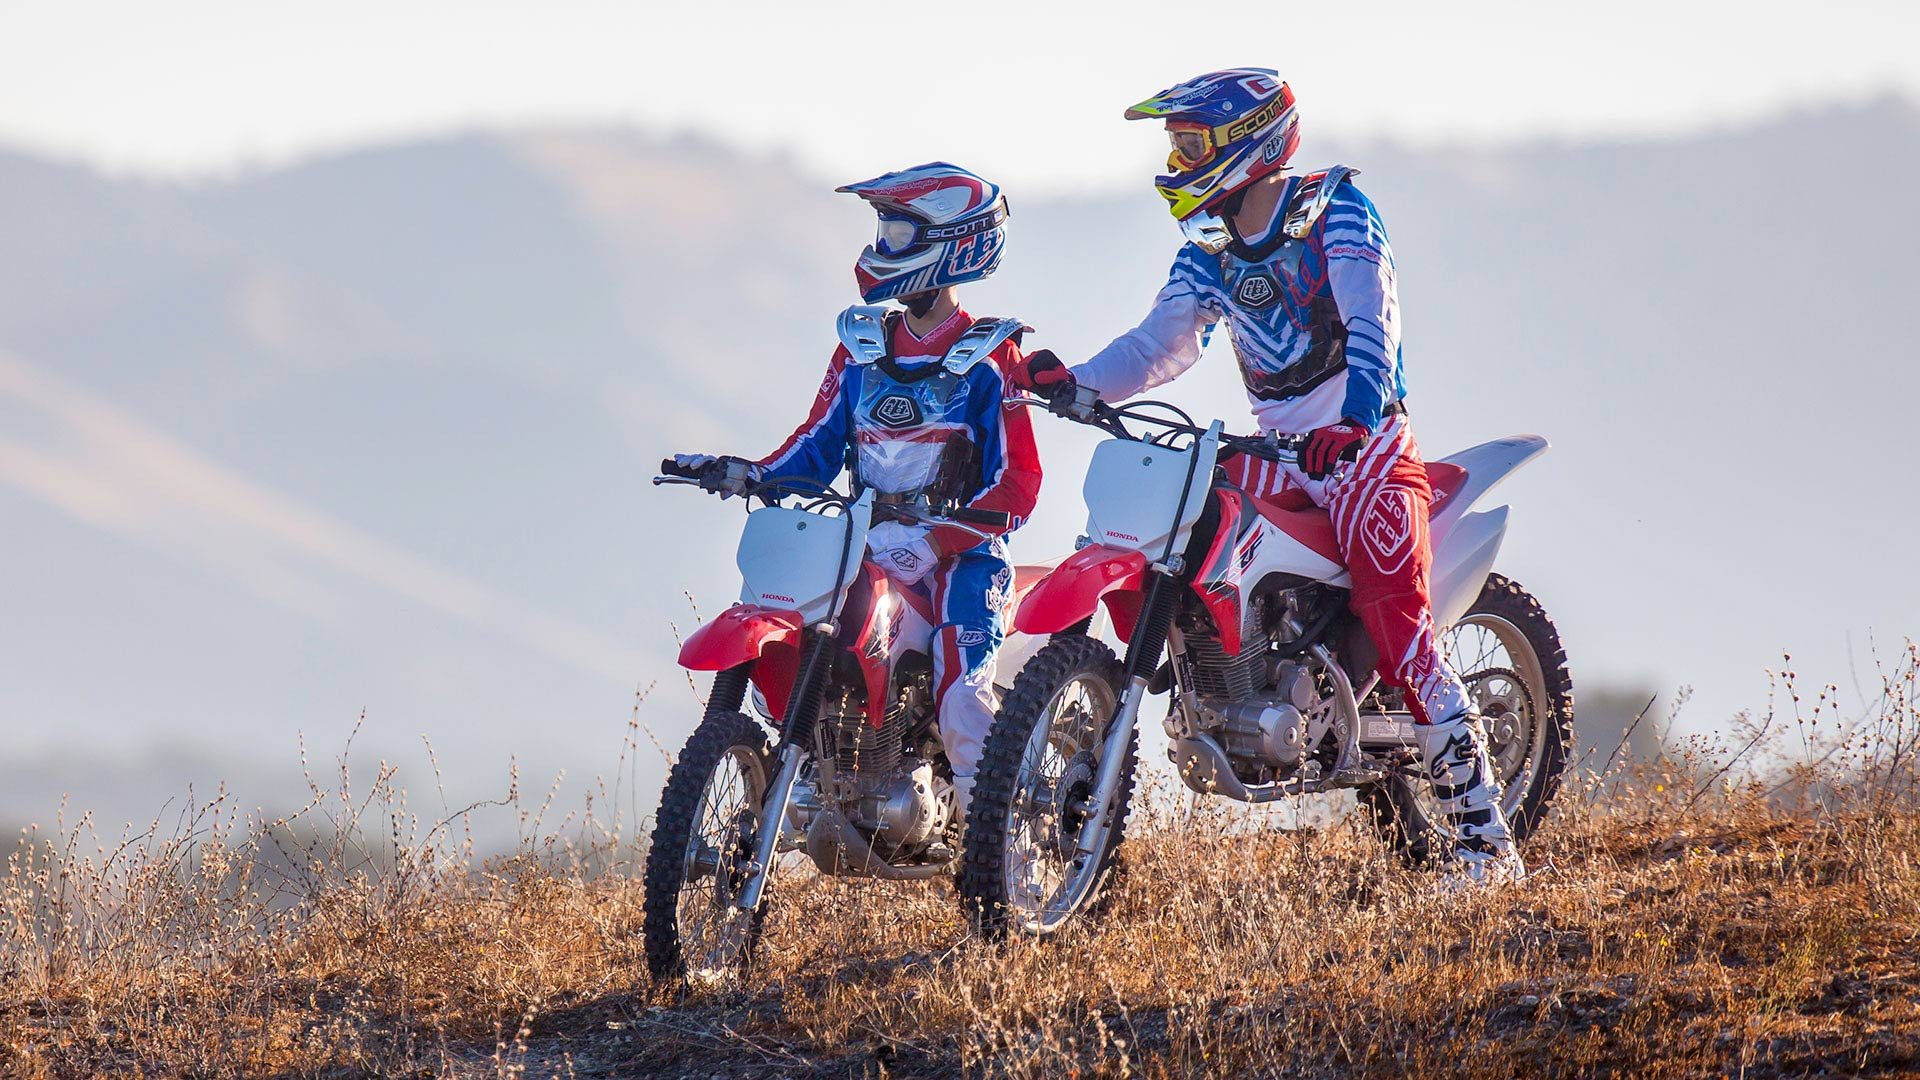 Best Trail Bike on the Market | Honda CRF230F Review